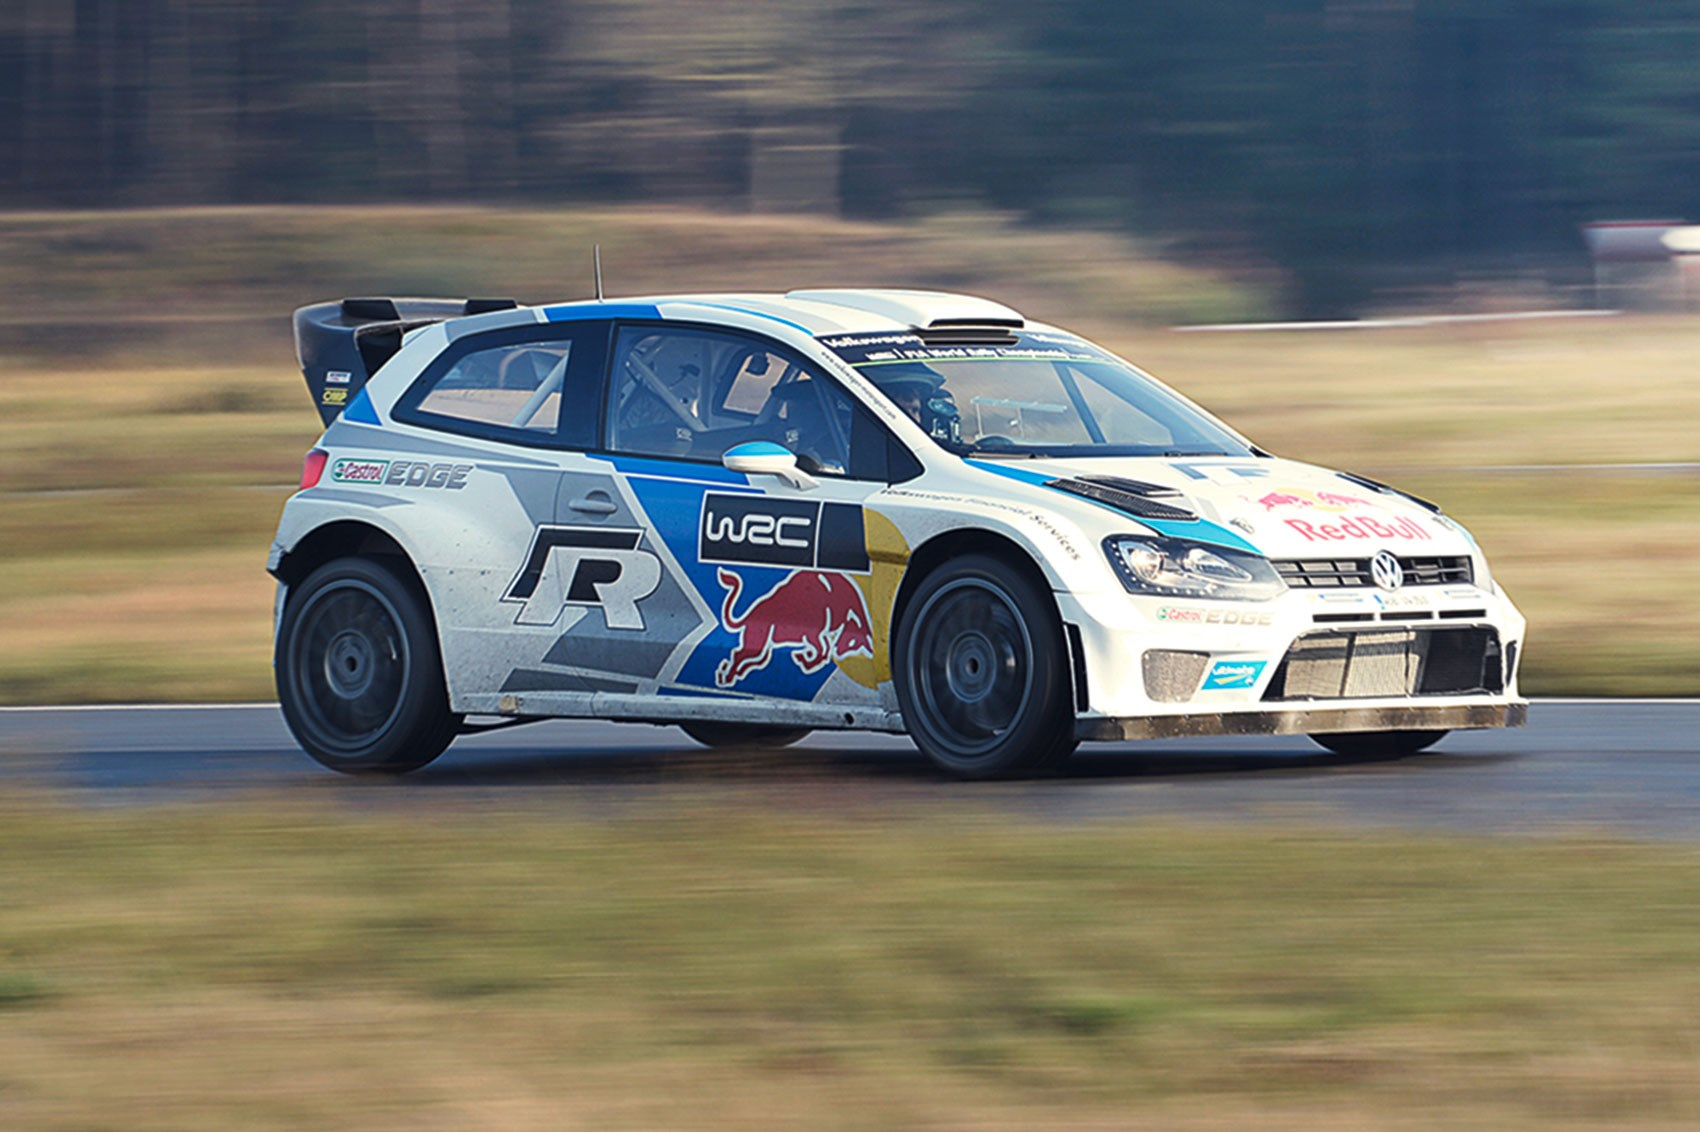 Rally Cars For Sale >> Car Vs The World S Best Rally Car Driving The Vw Polo Wrc